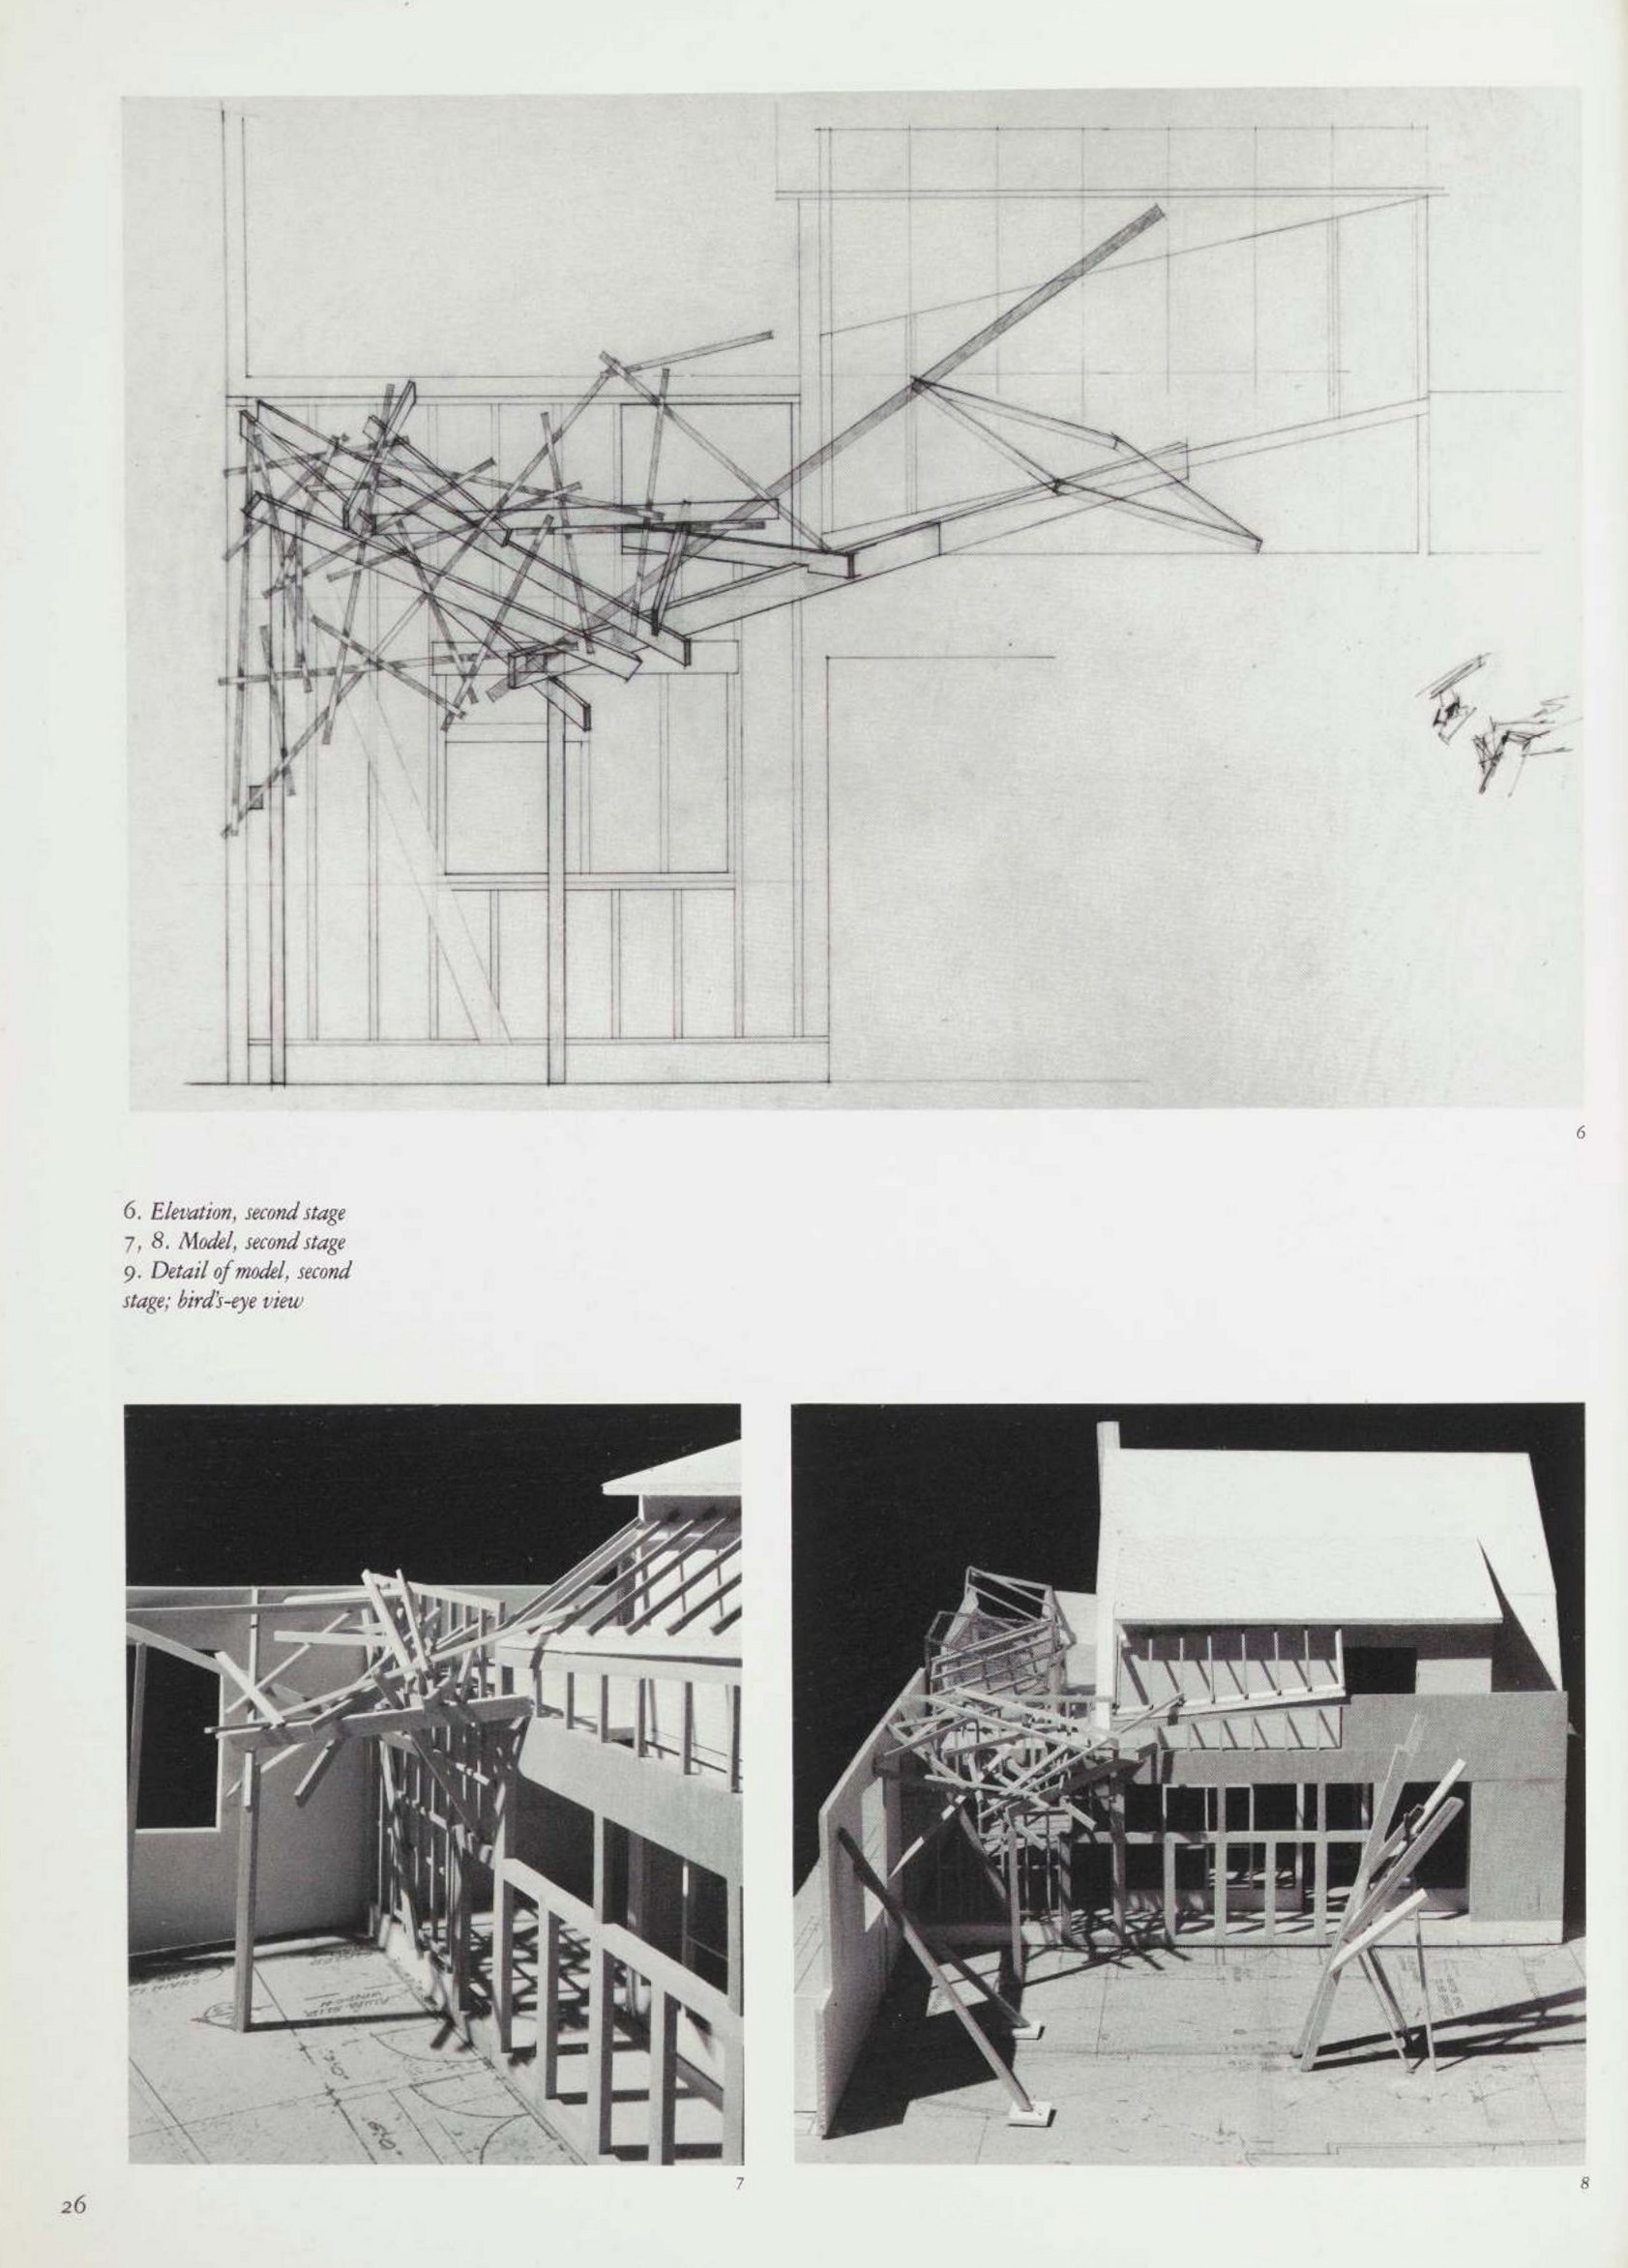 Deconstructivist architecture / Philip Johnson and Mark Wigley. — New York : The Museum of Modern Art, 1988